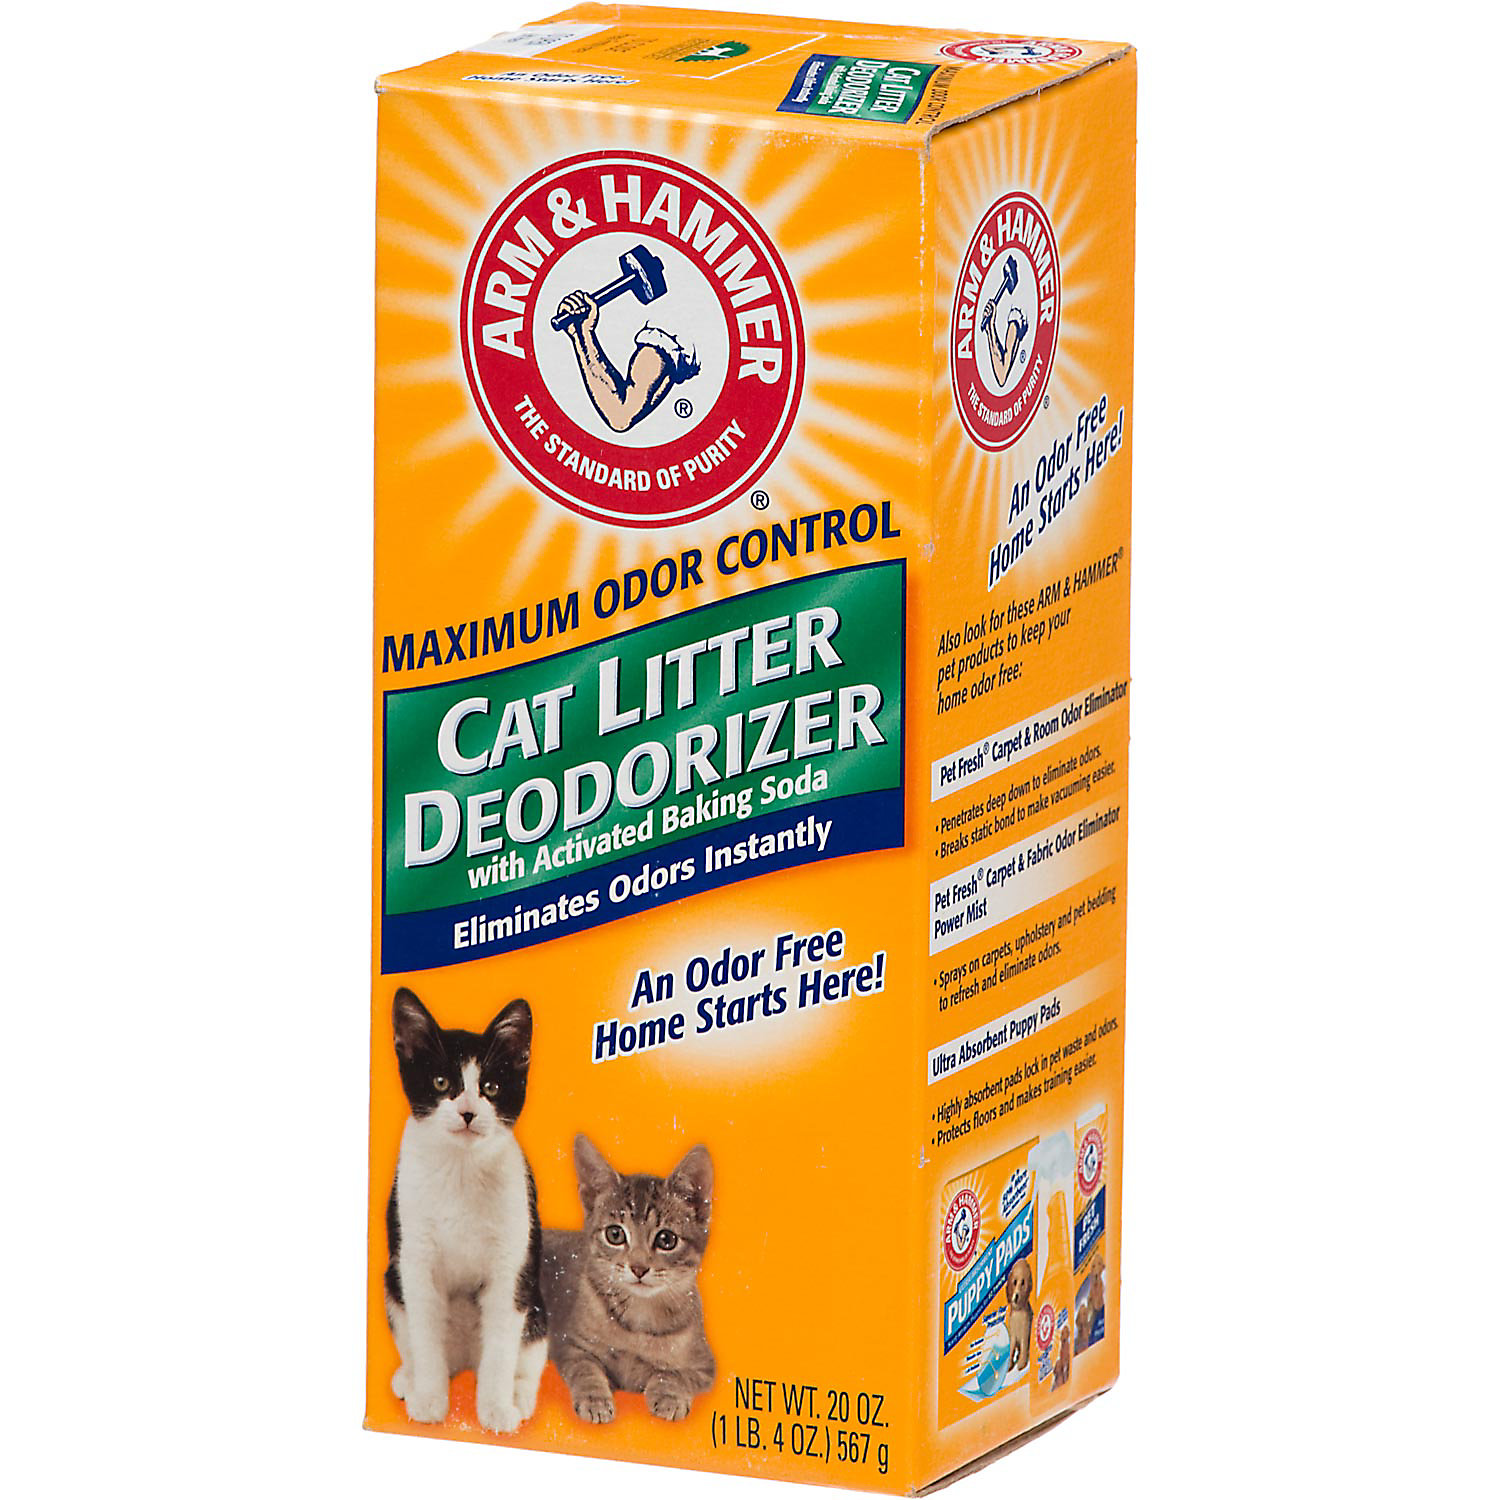 Arm & Hammer Cat Litter Deodorizer With Baking Soda, 20 Oz.